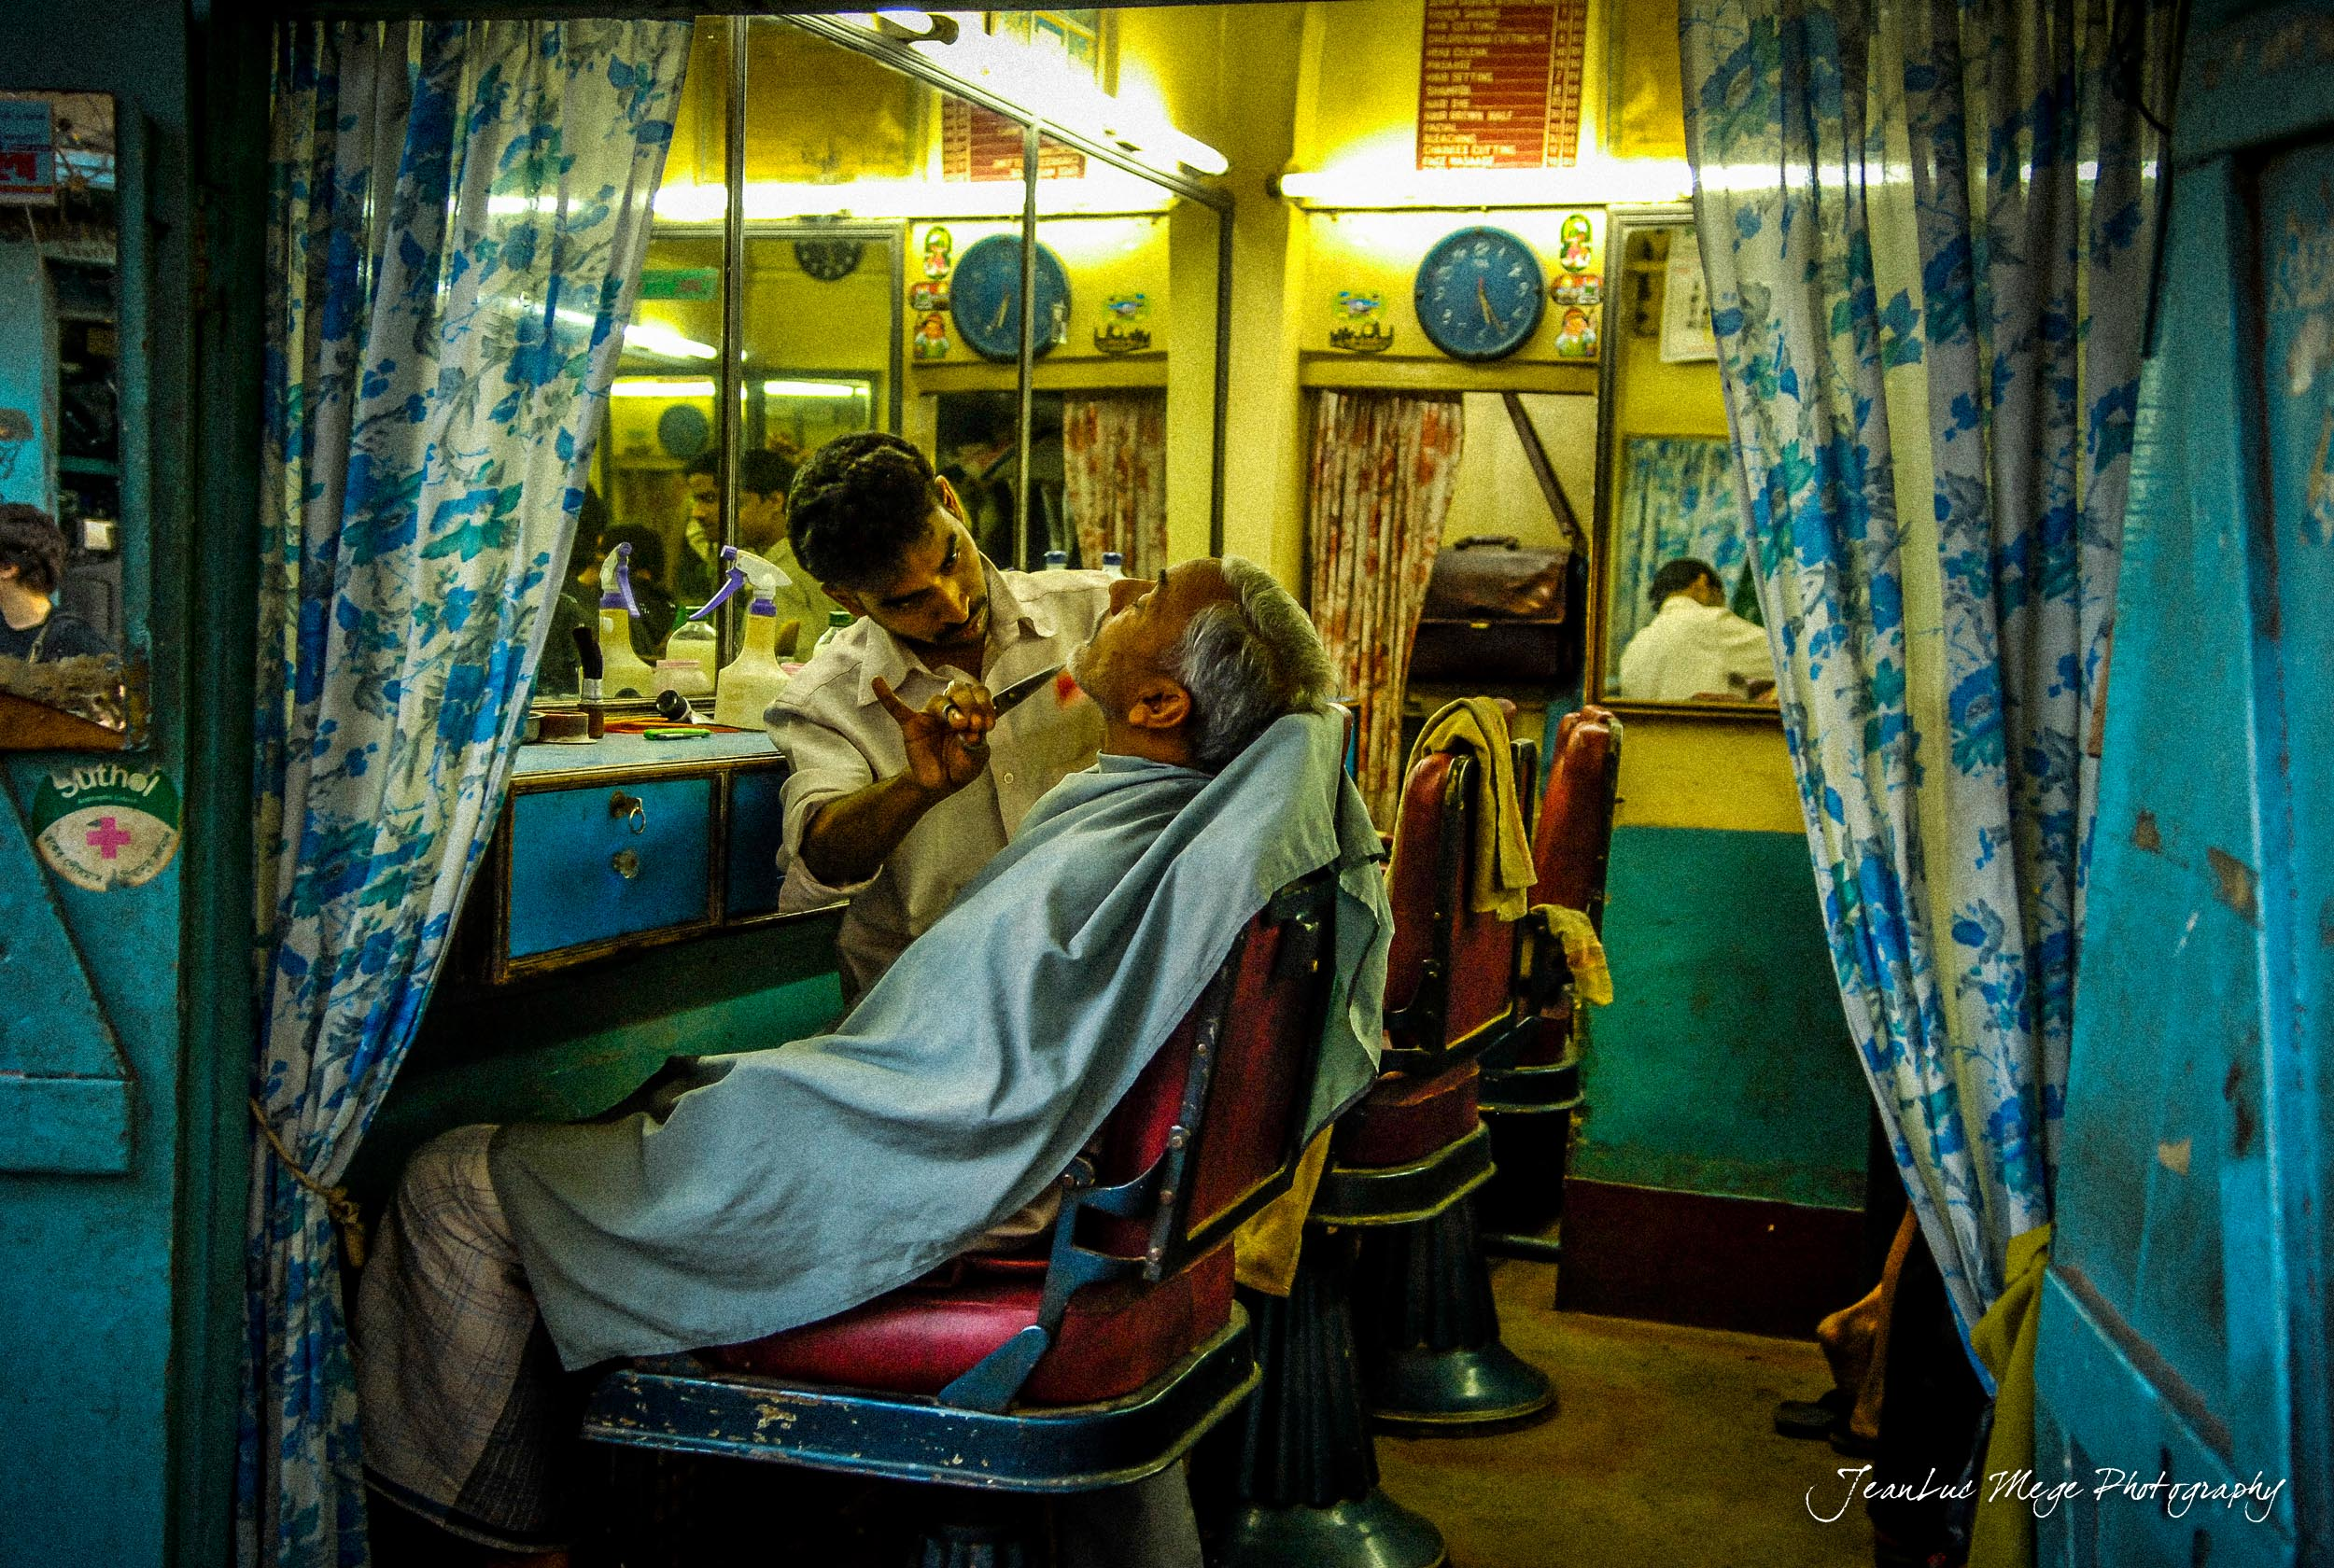 Streets of India ©jeanlucmege-4739.jpg